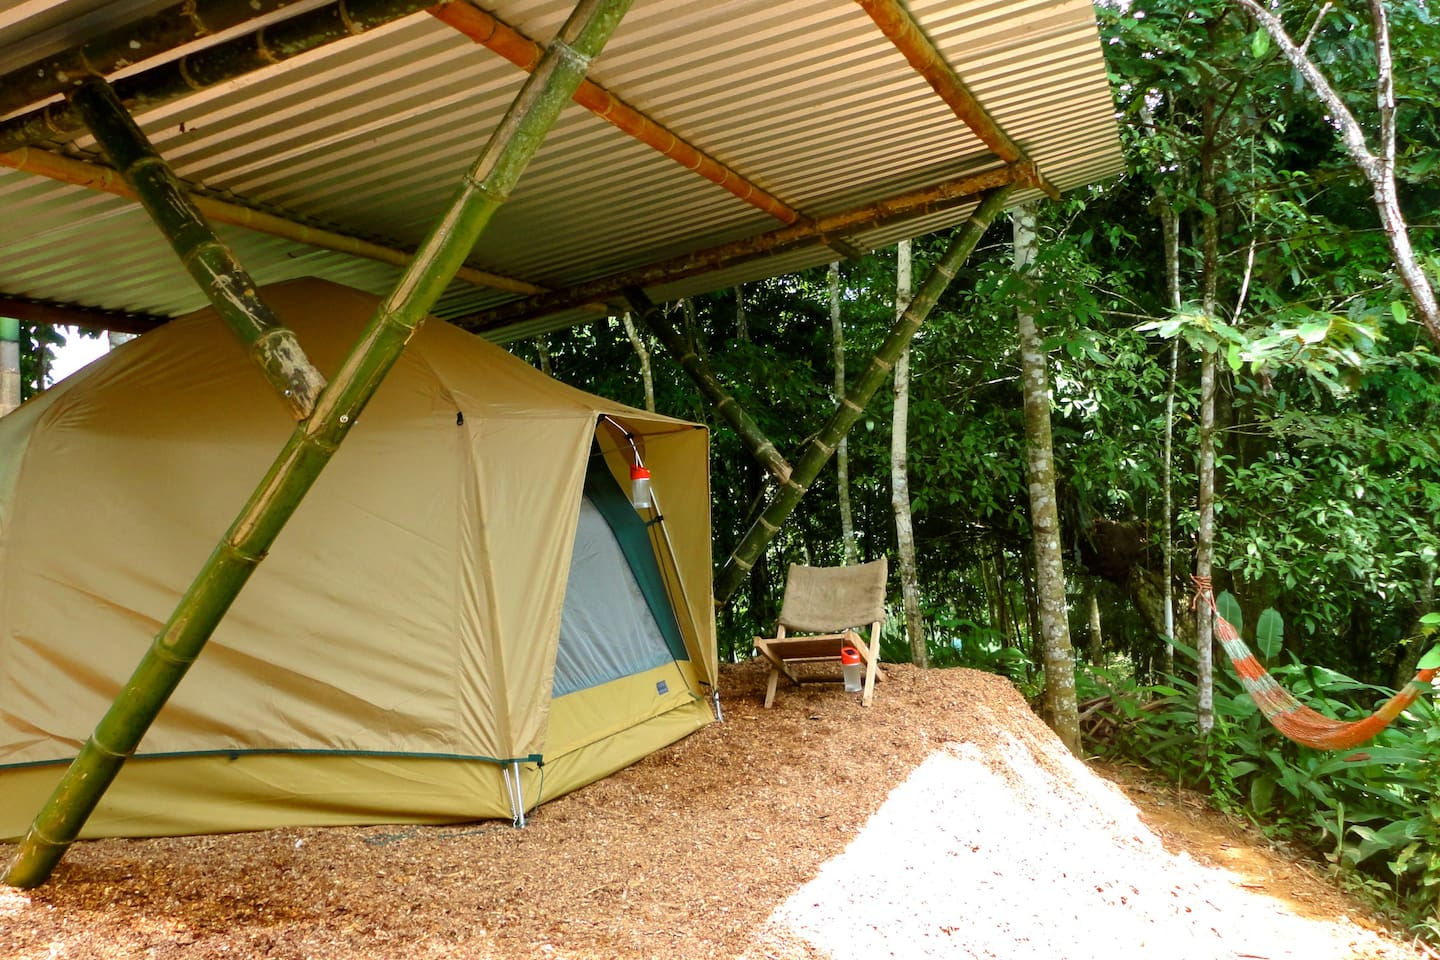 The Tent campsite comes with chairs, a relaxing hammock and a solar lantern.